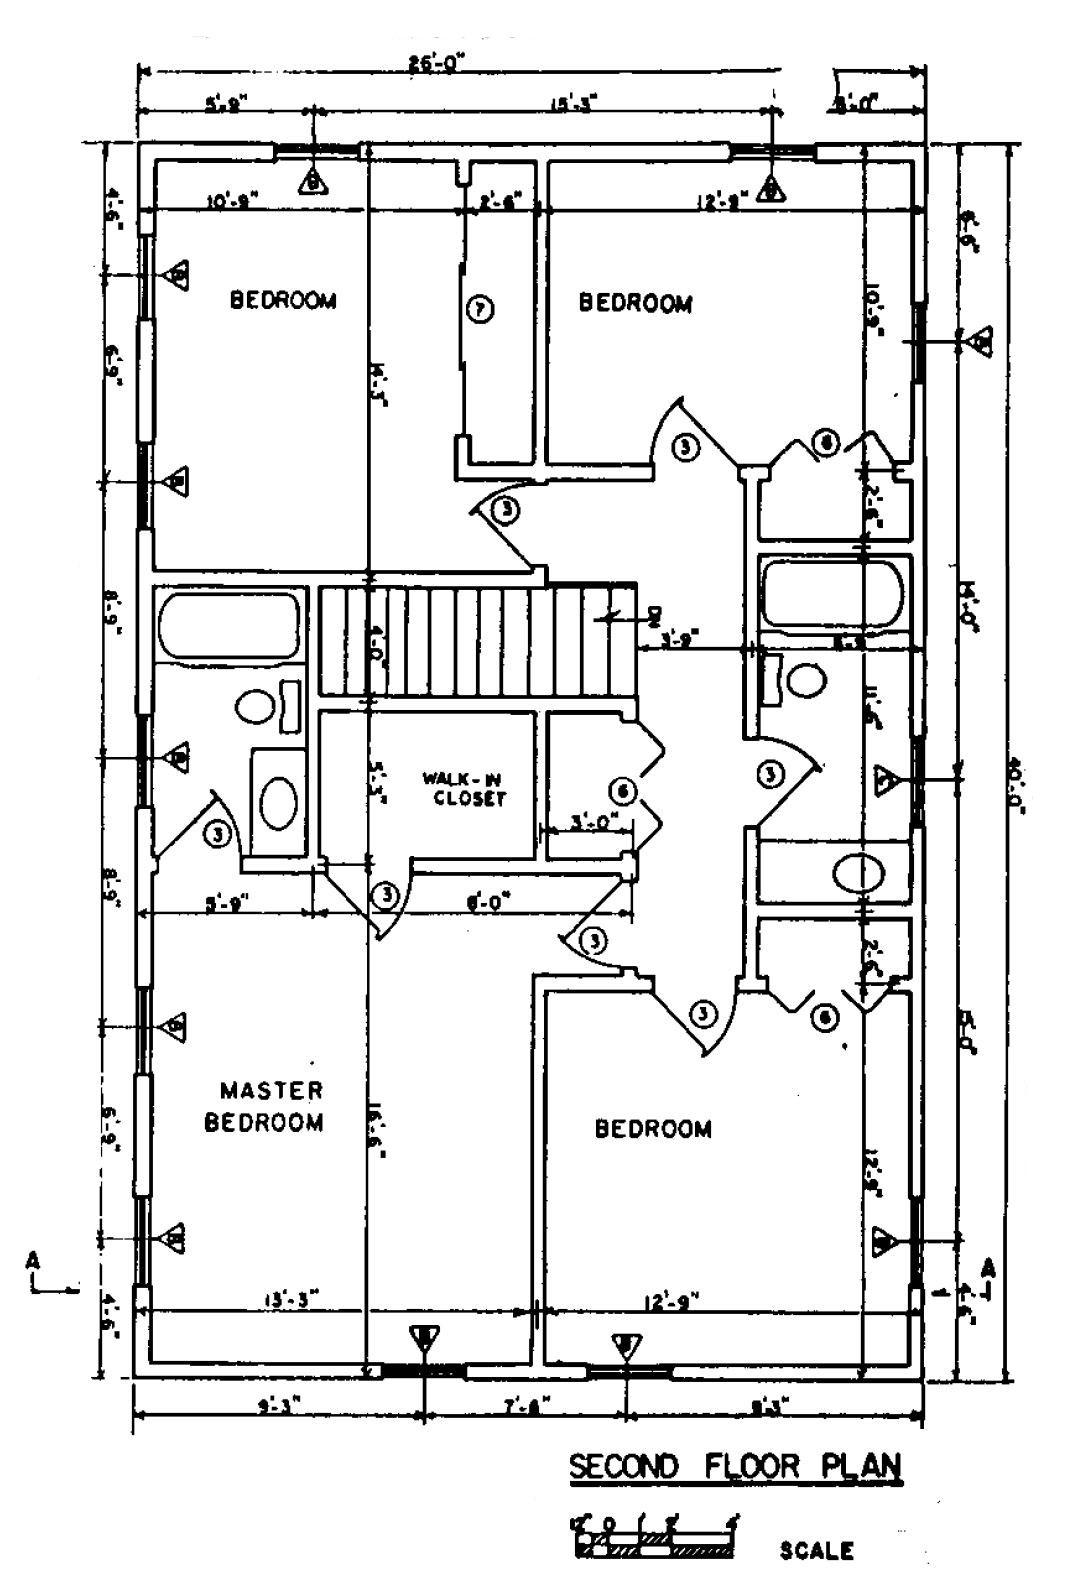 Free Floor Plans - Better Homes and Gardens